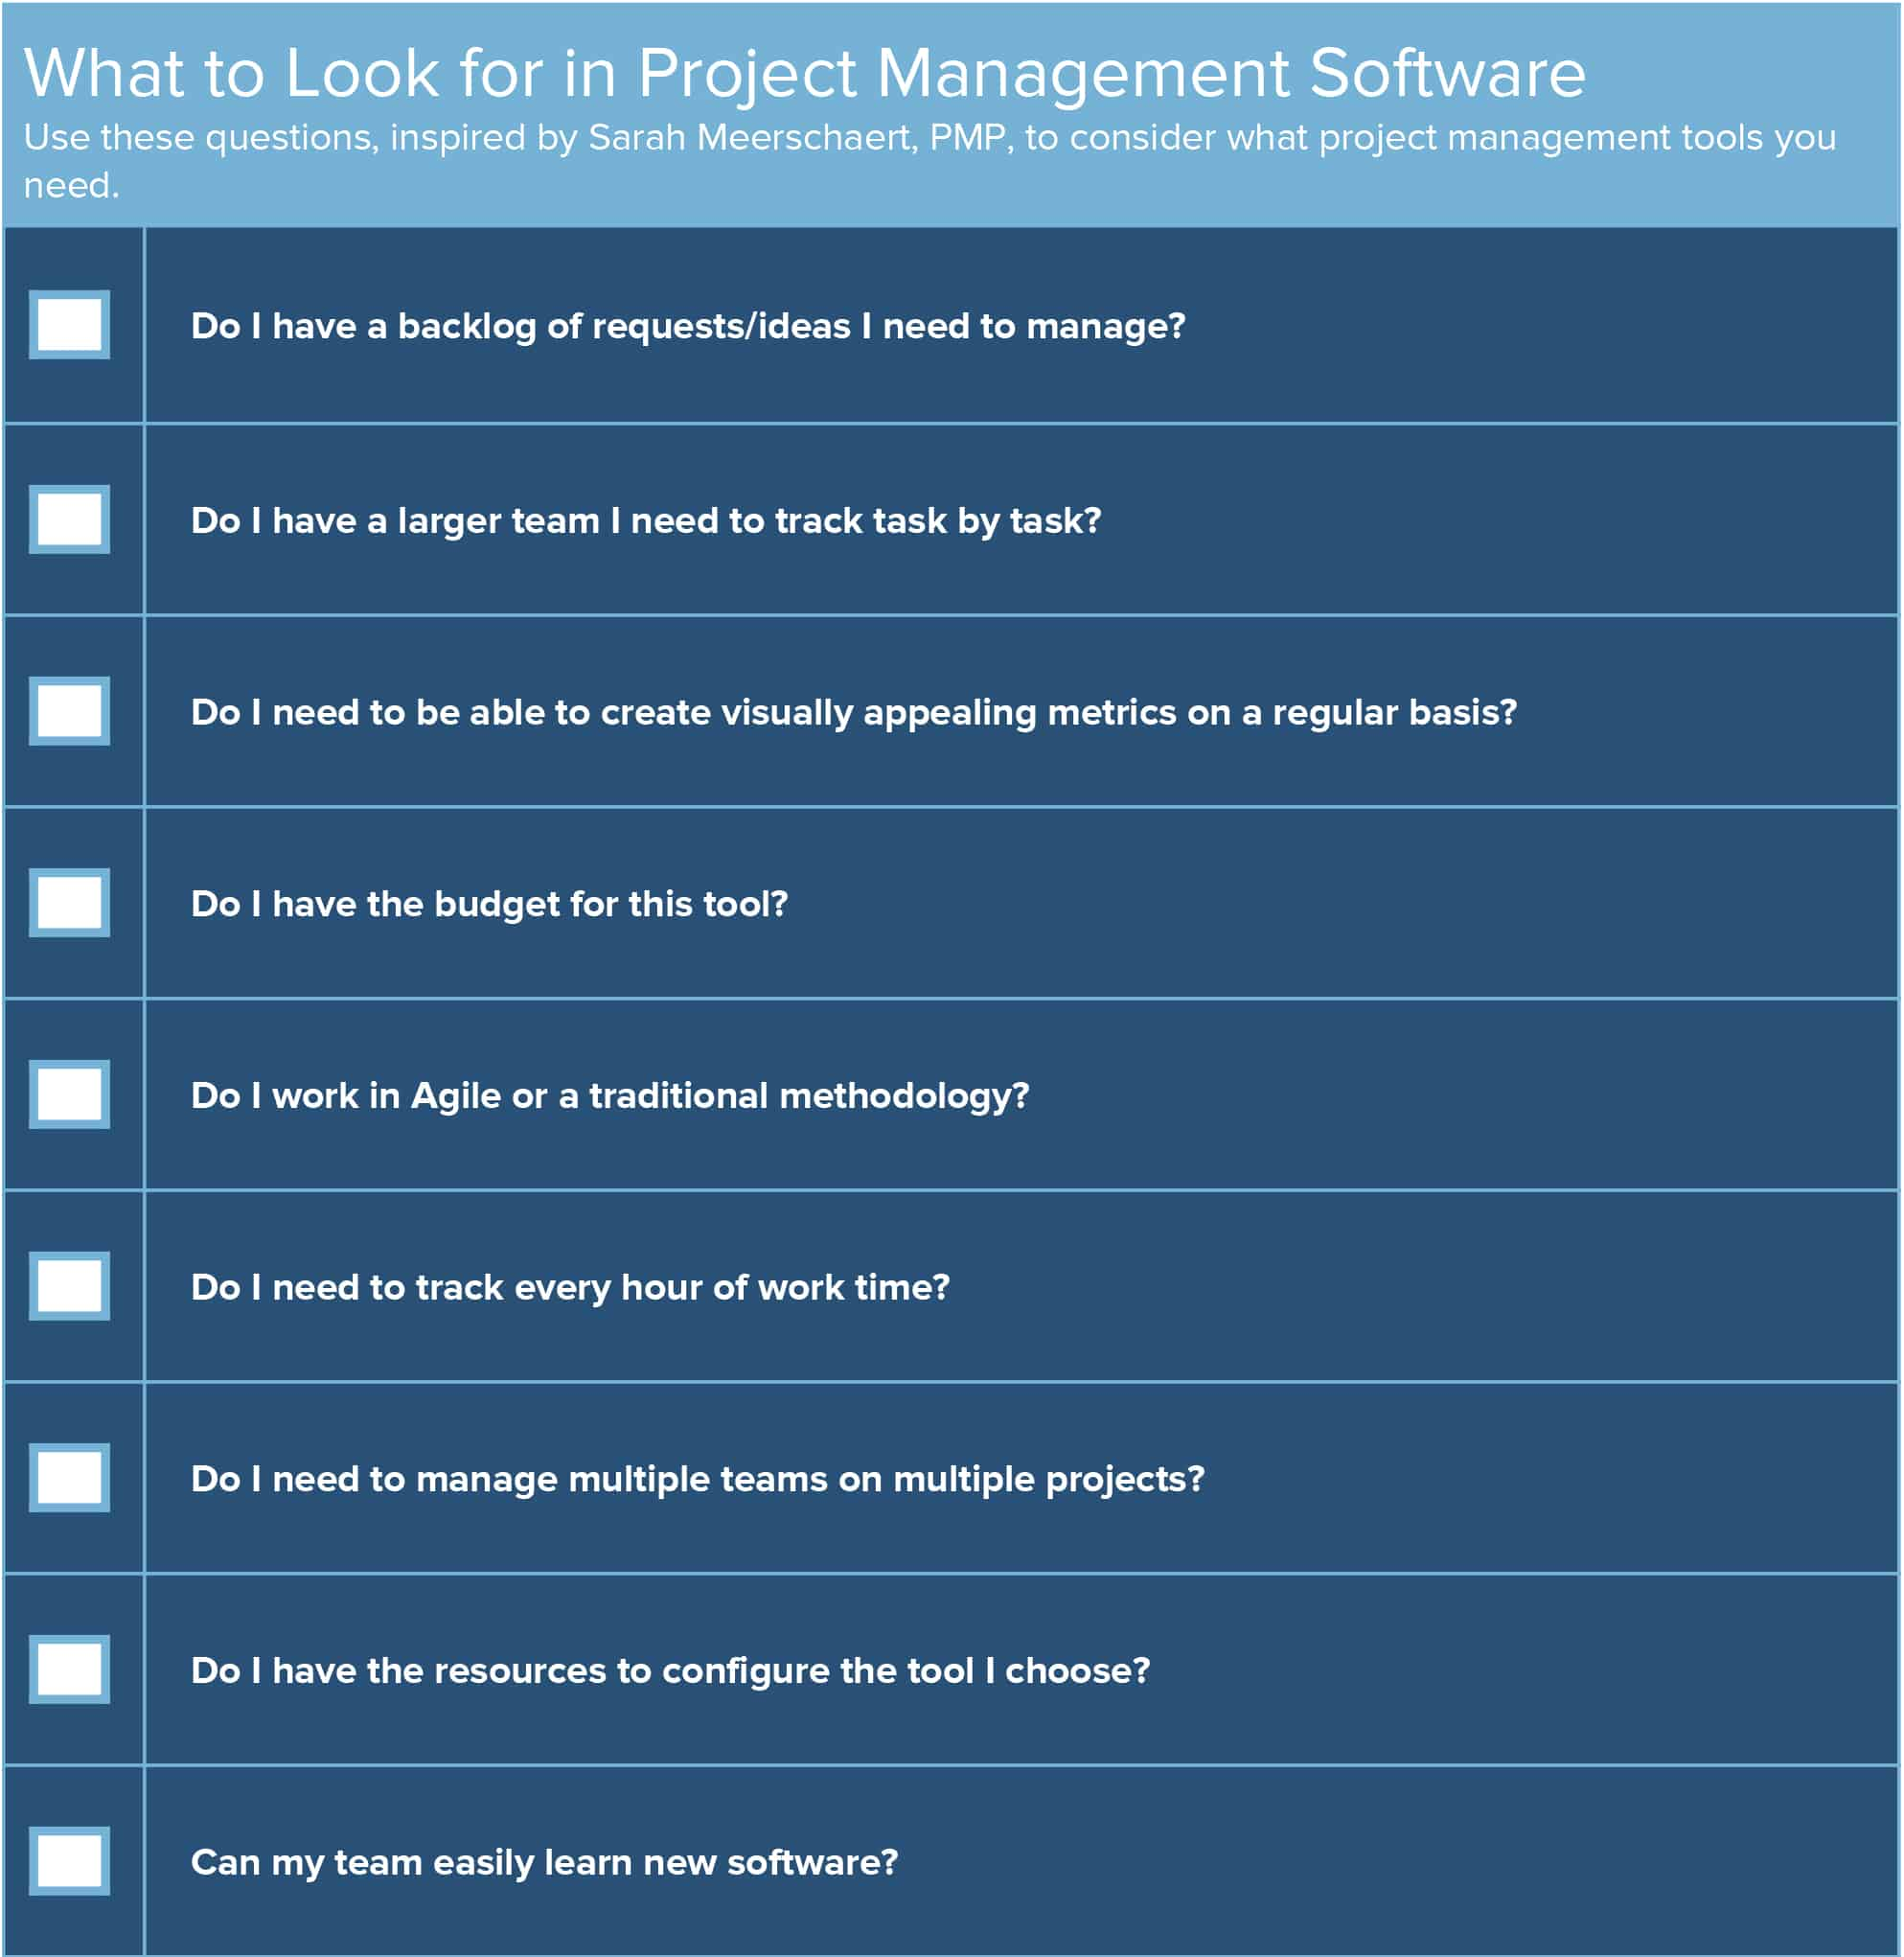 How to use jira for project management smartsheet ic jira pm pm softwareg xflitez Image collections